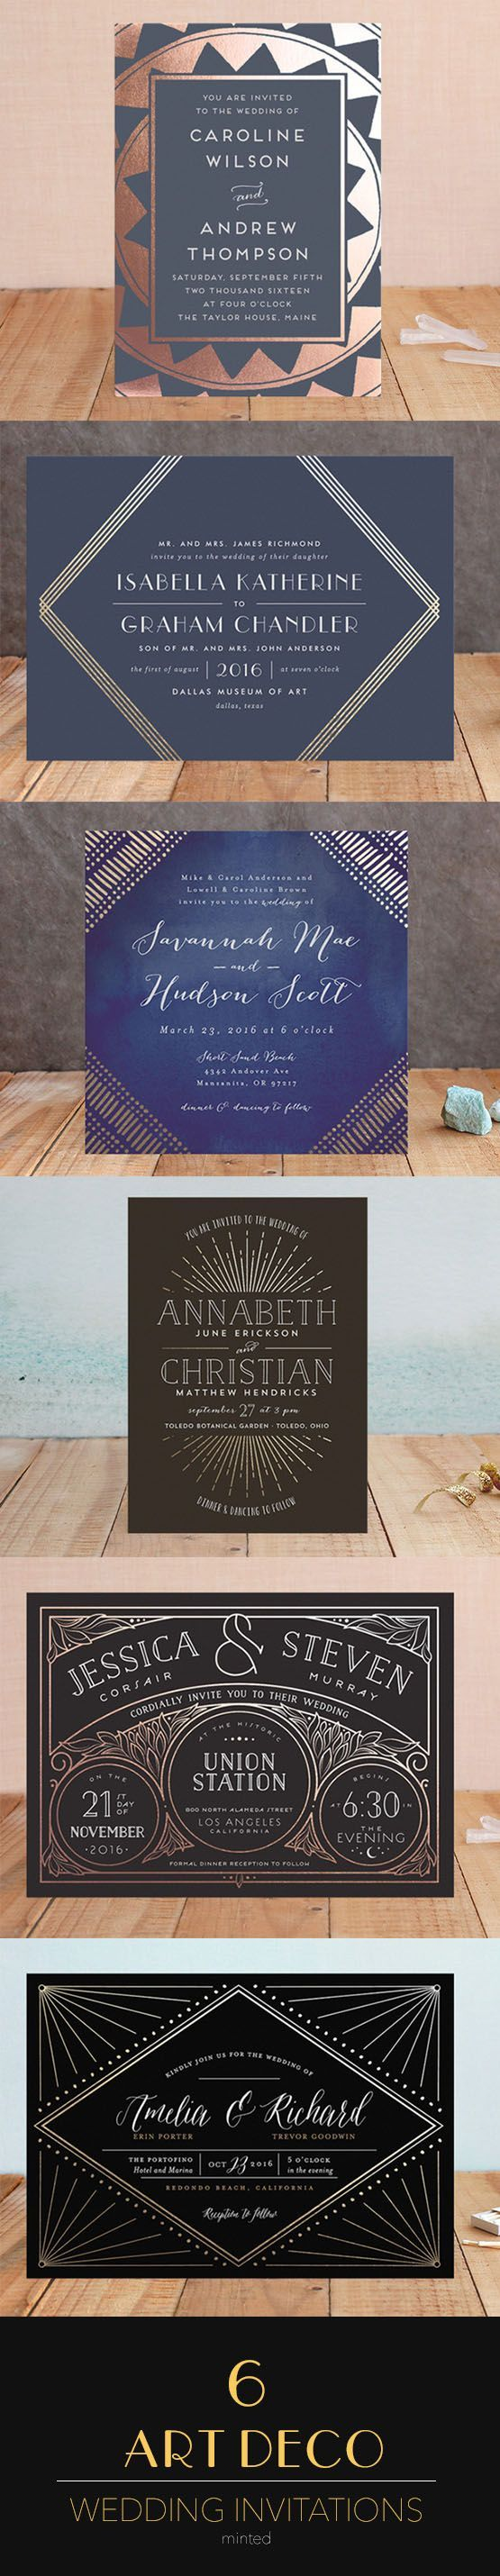 casual evening wedding invitation wording%0A Black  Navy and Gold Wedding Invitations from Minted with a gorgeous art  nouveau   art